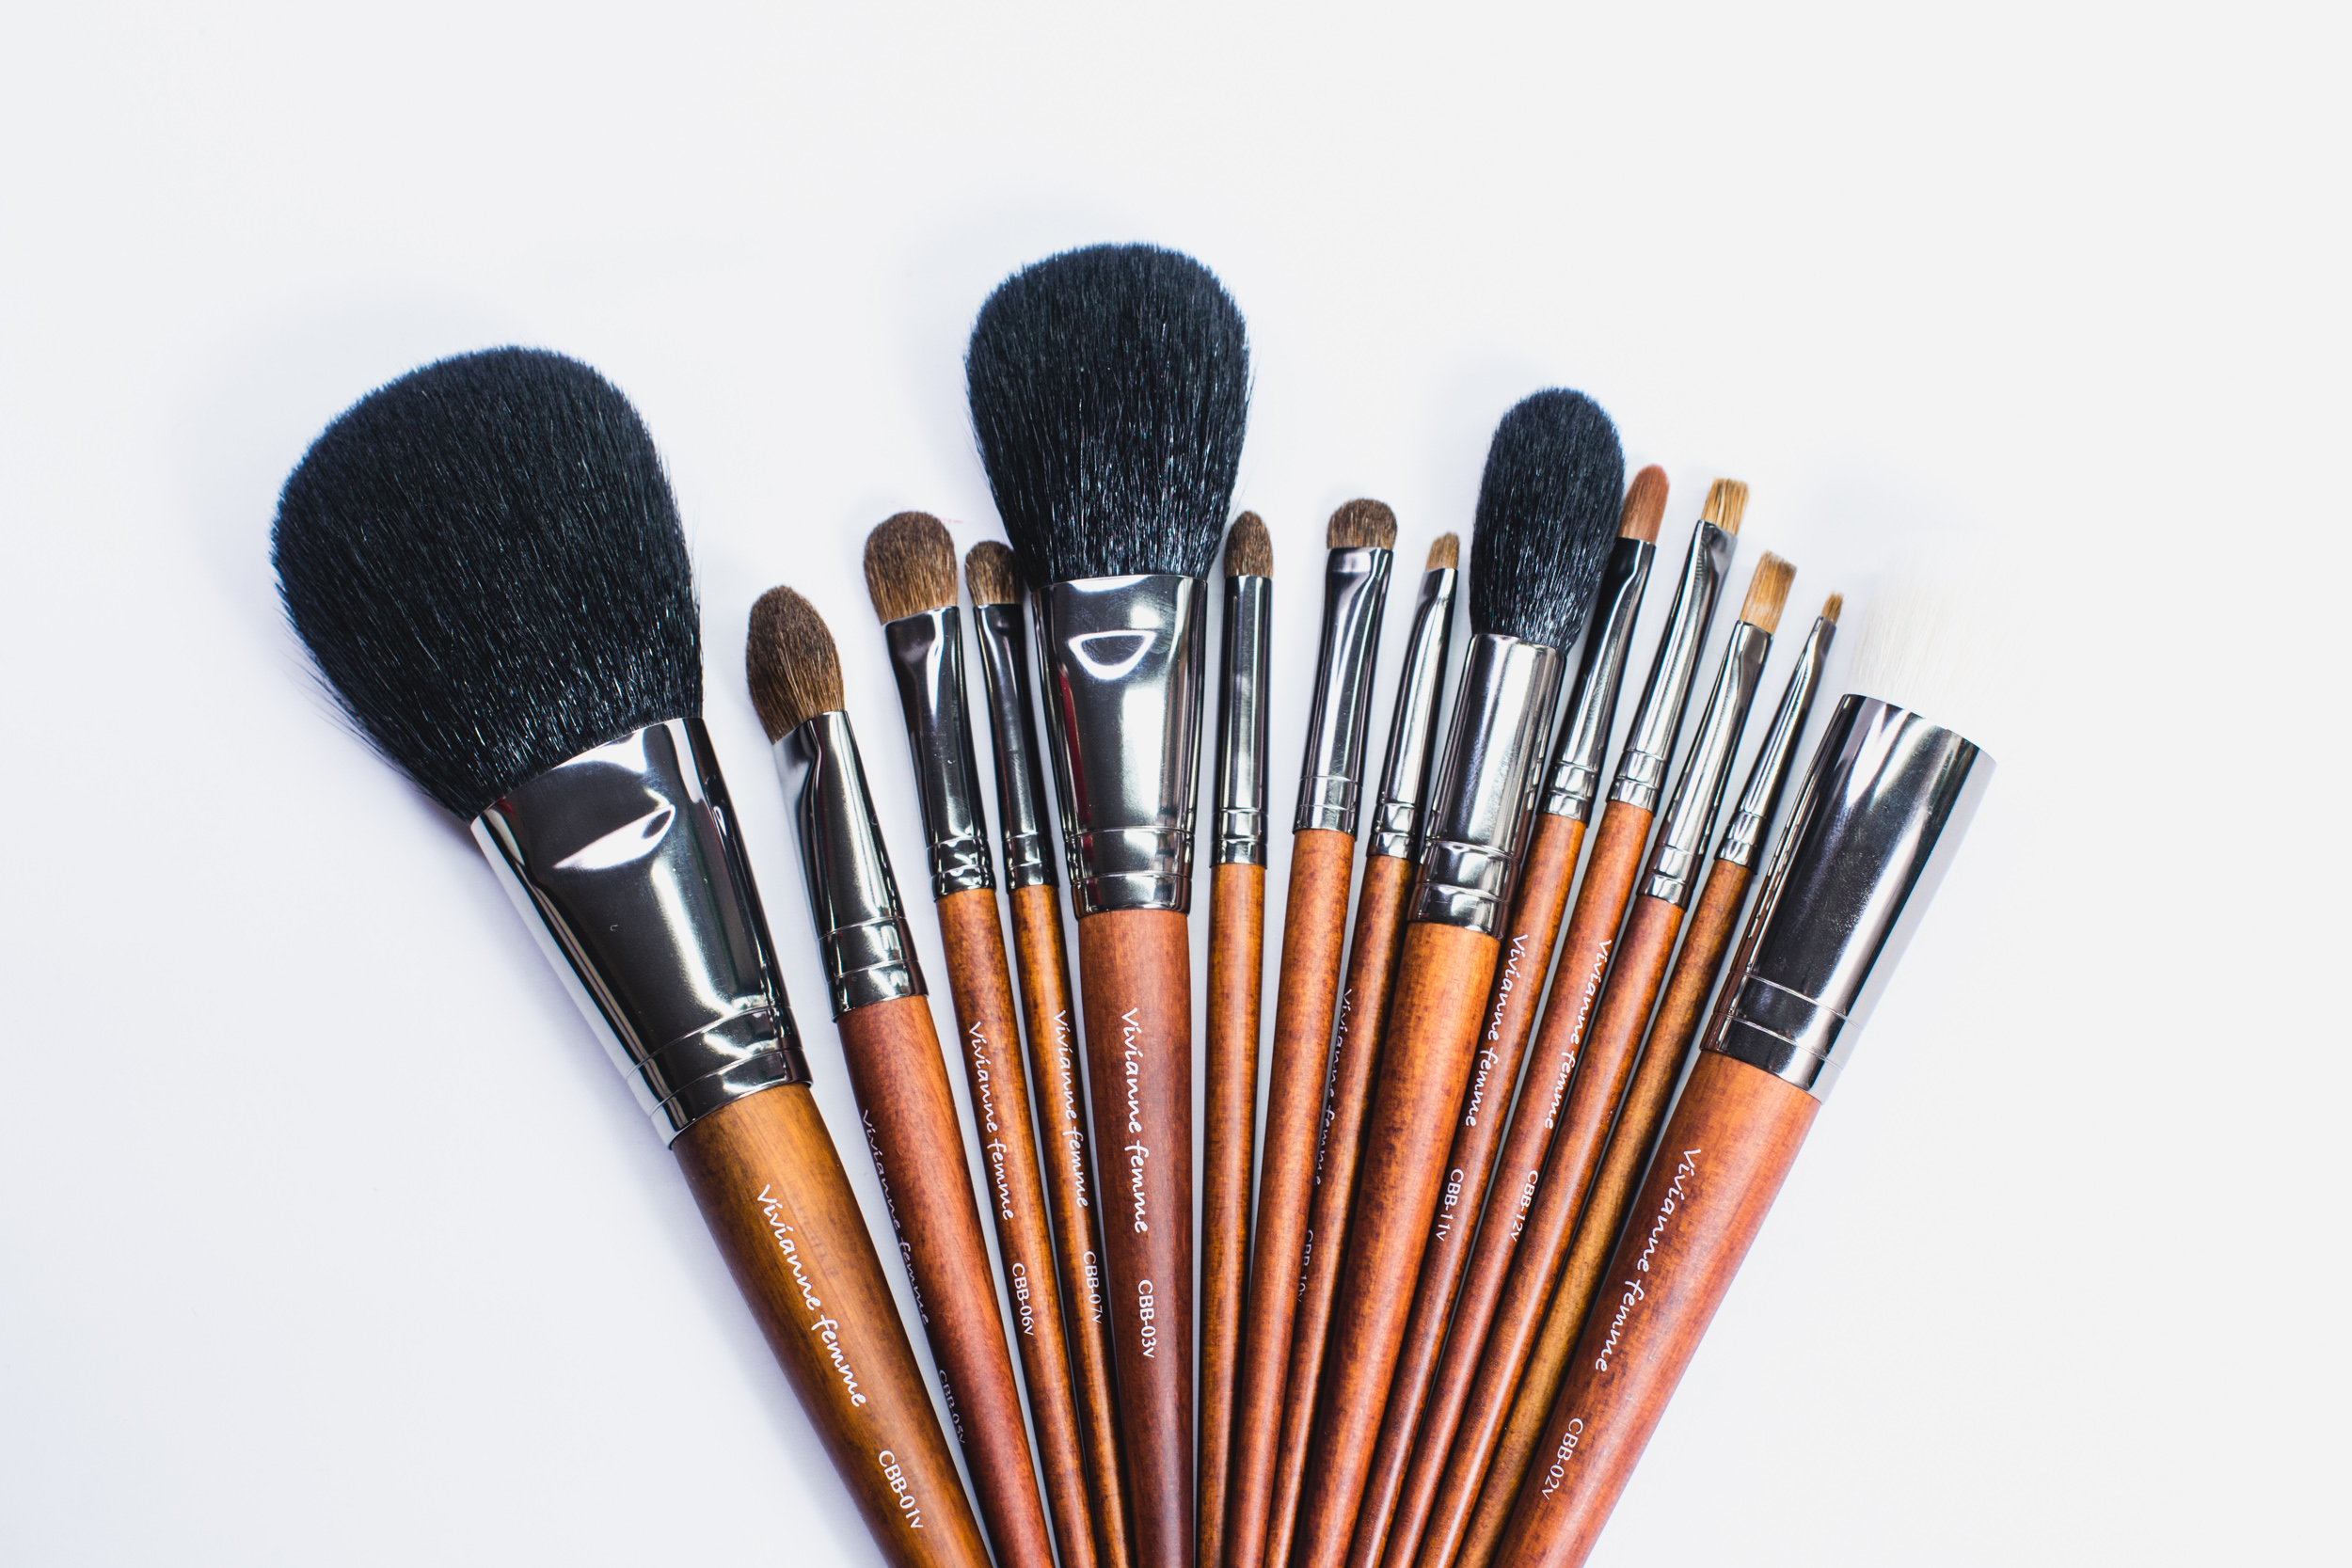 bisyodo_vivianne-femme_face-eye_brush-set_project-vanity-online-shop_2019-91.JPG